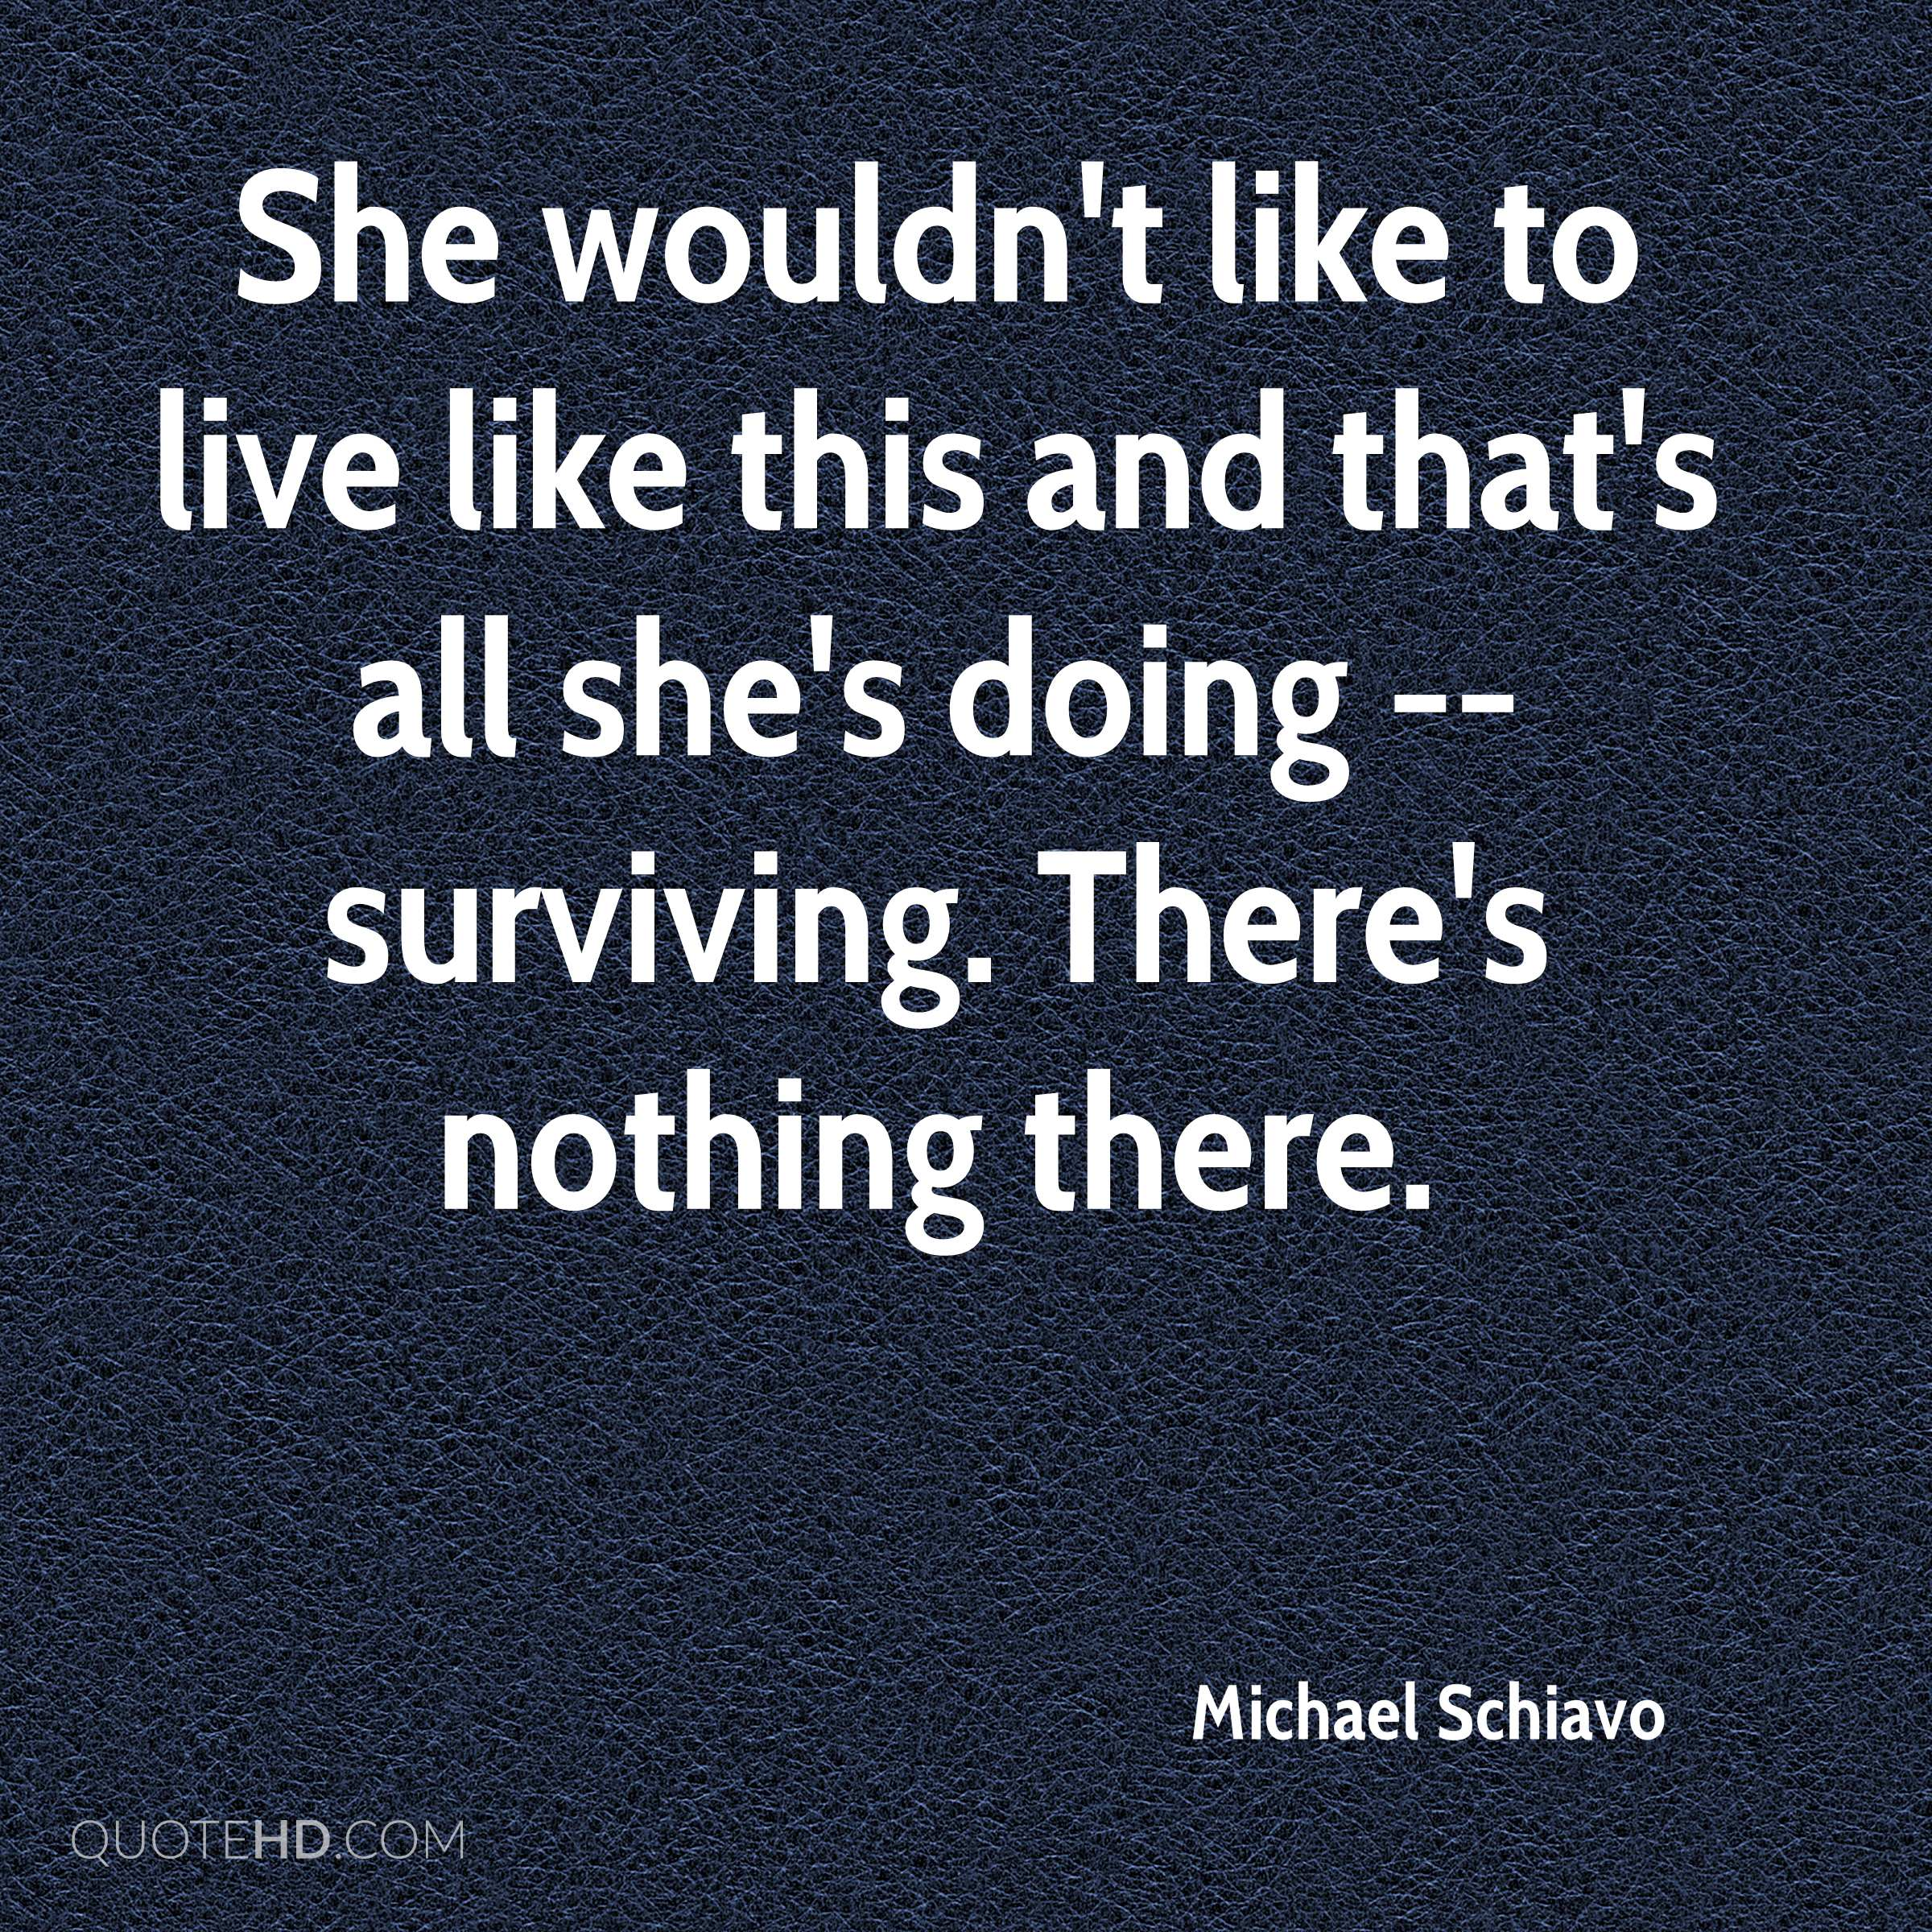 She wouldn't like to live like this and that's all she's doing -- surviving. There's nothing there.